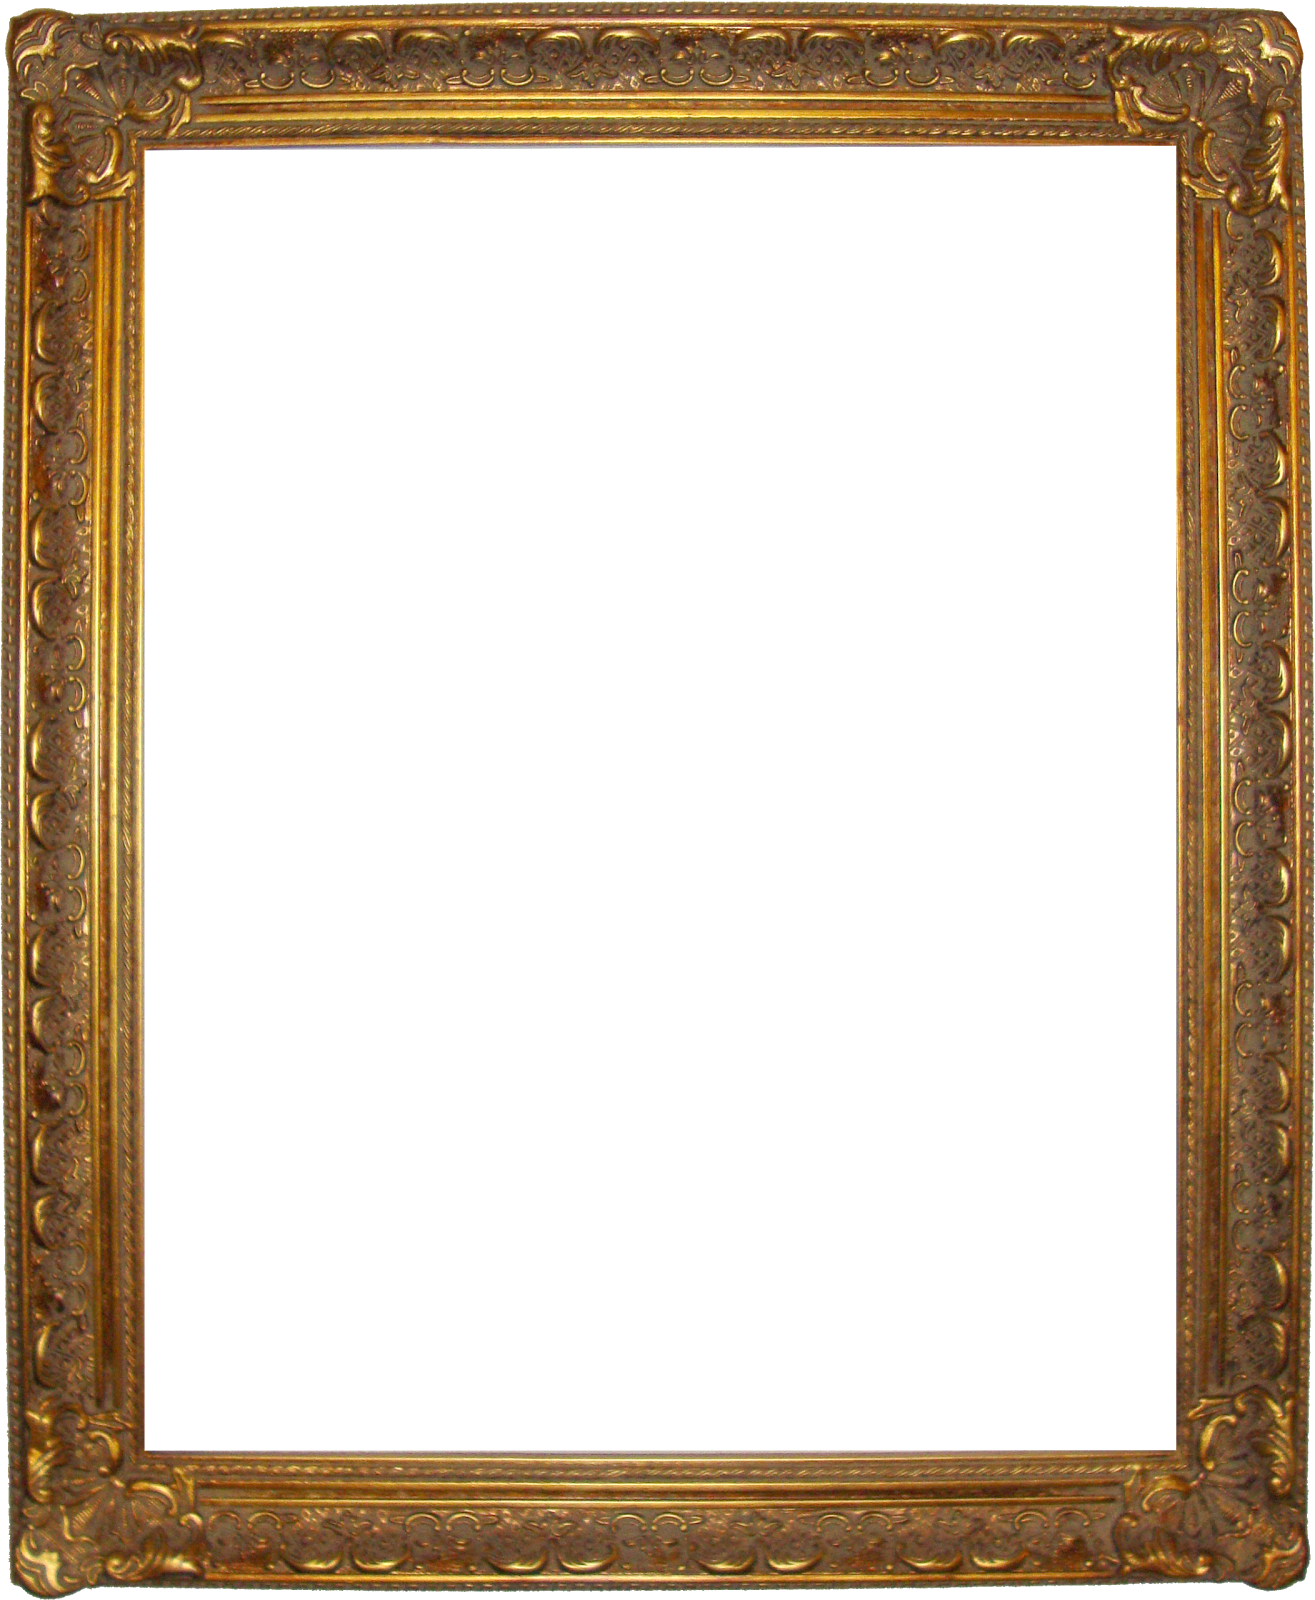 Best Free Images Frame Gold Clipart image #28910